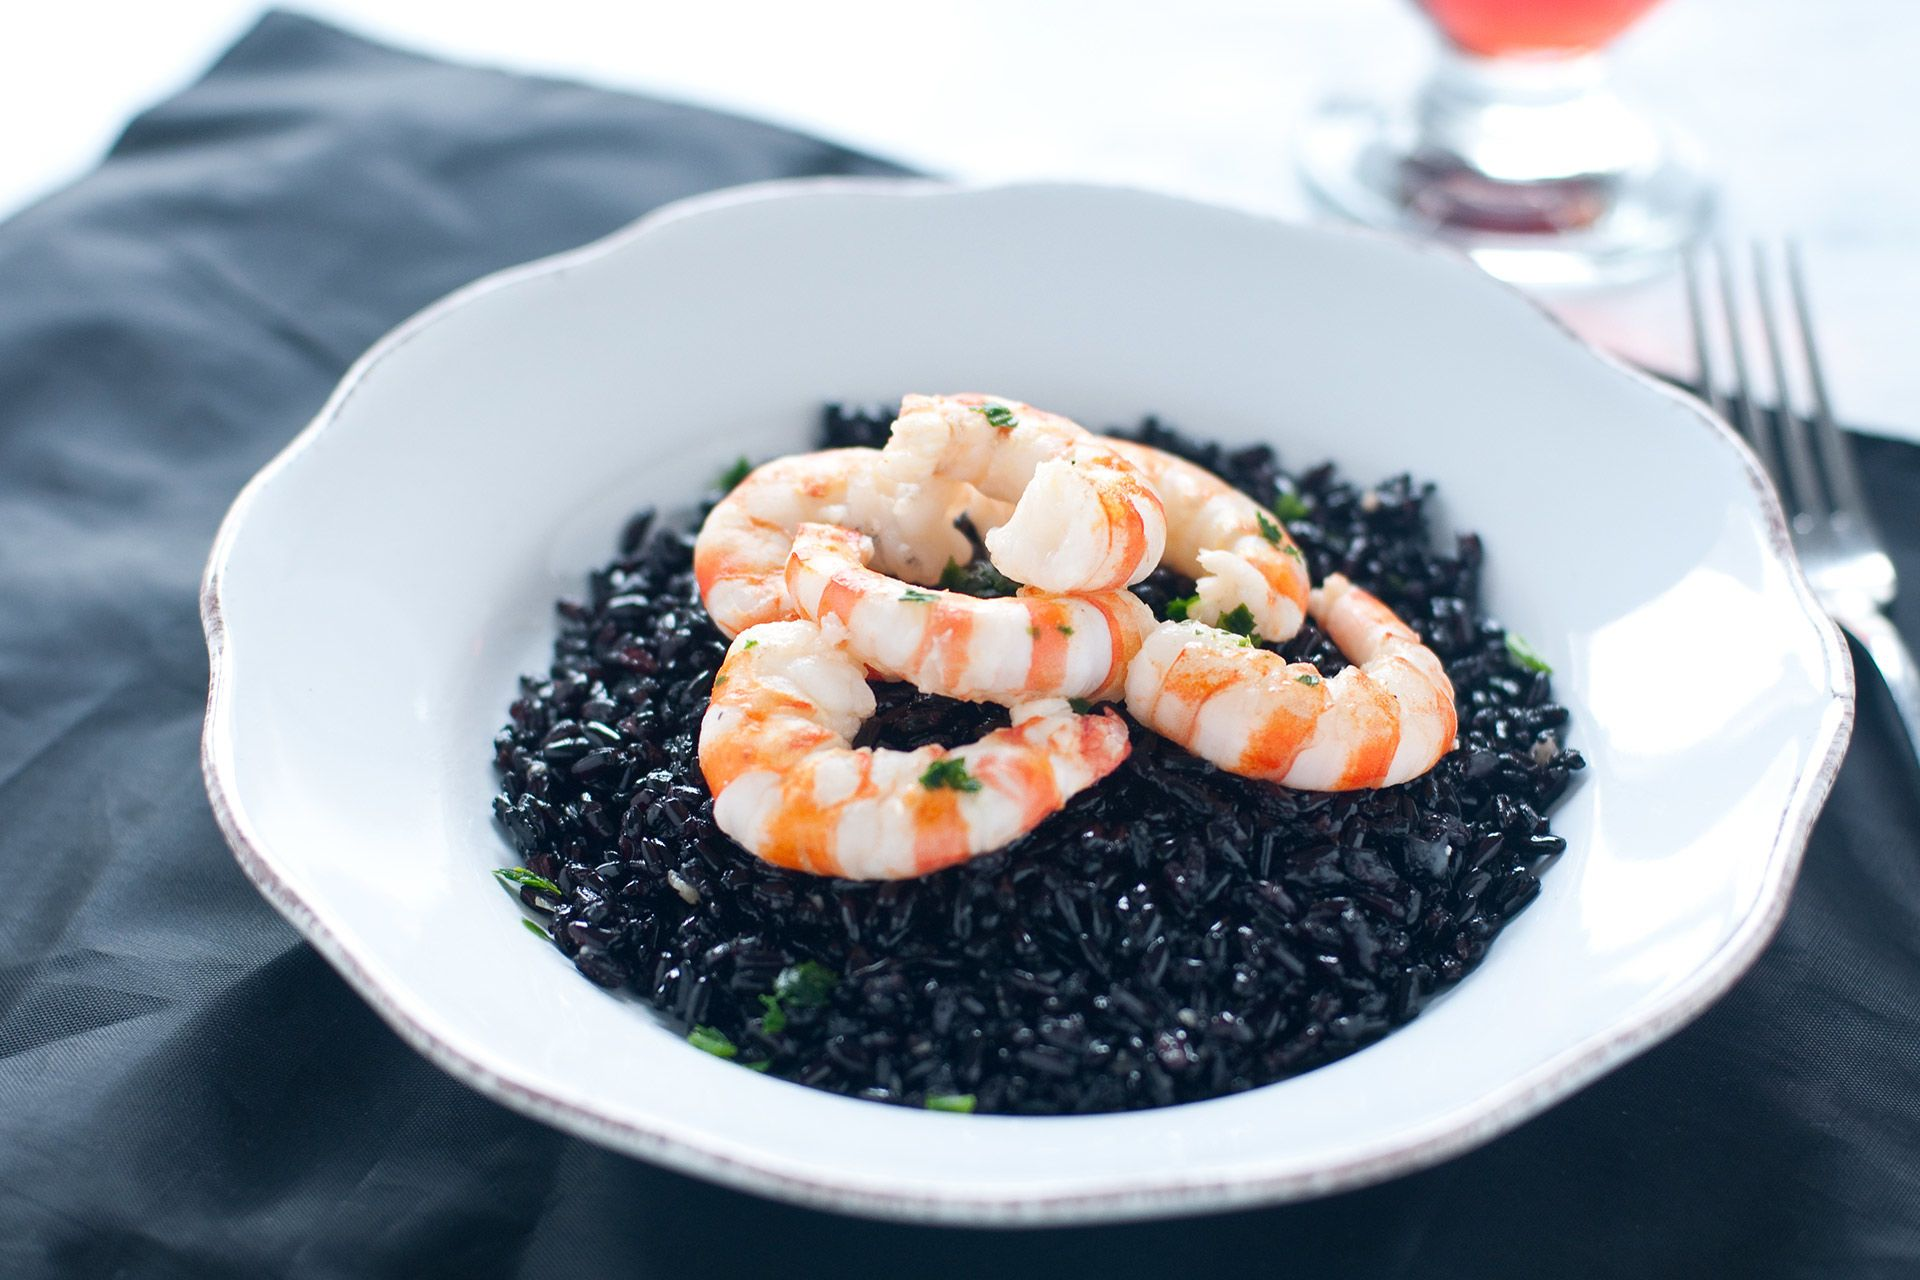 Black rice with prawns